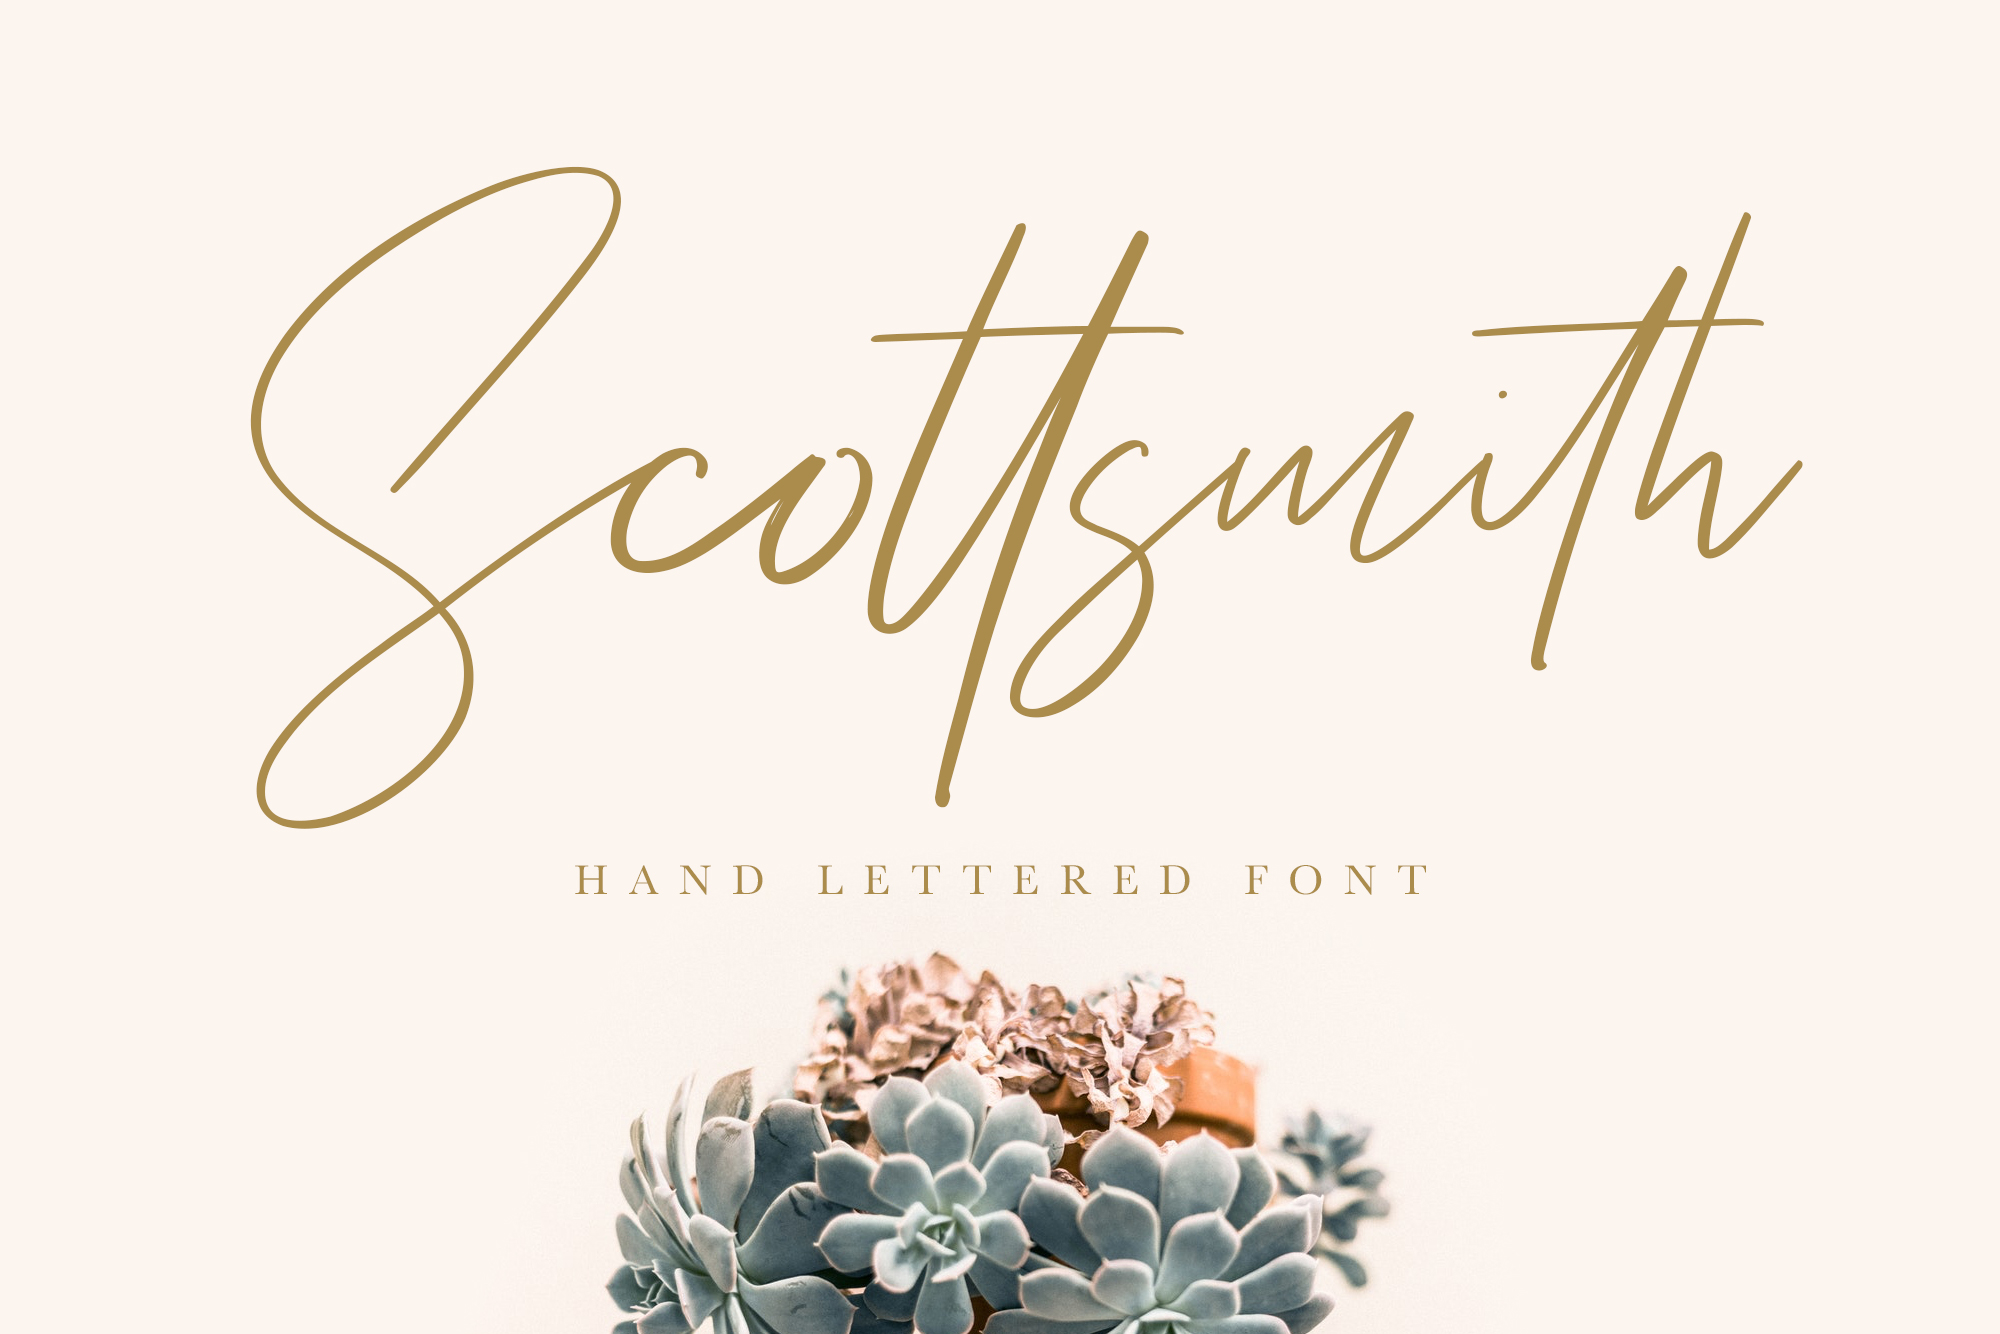 Scottsmith - Ligatures Font example image 1